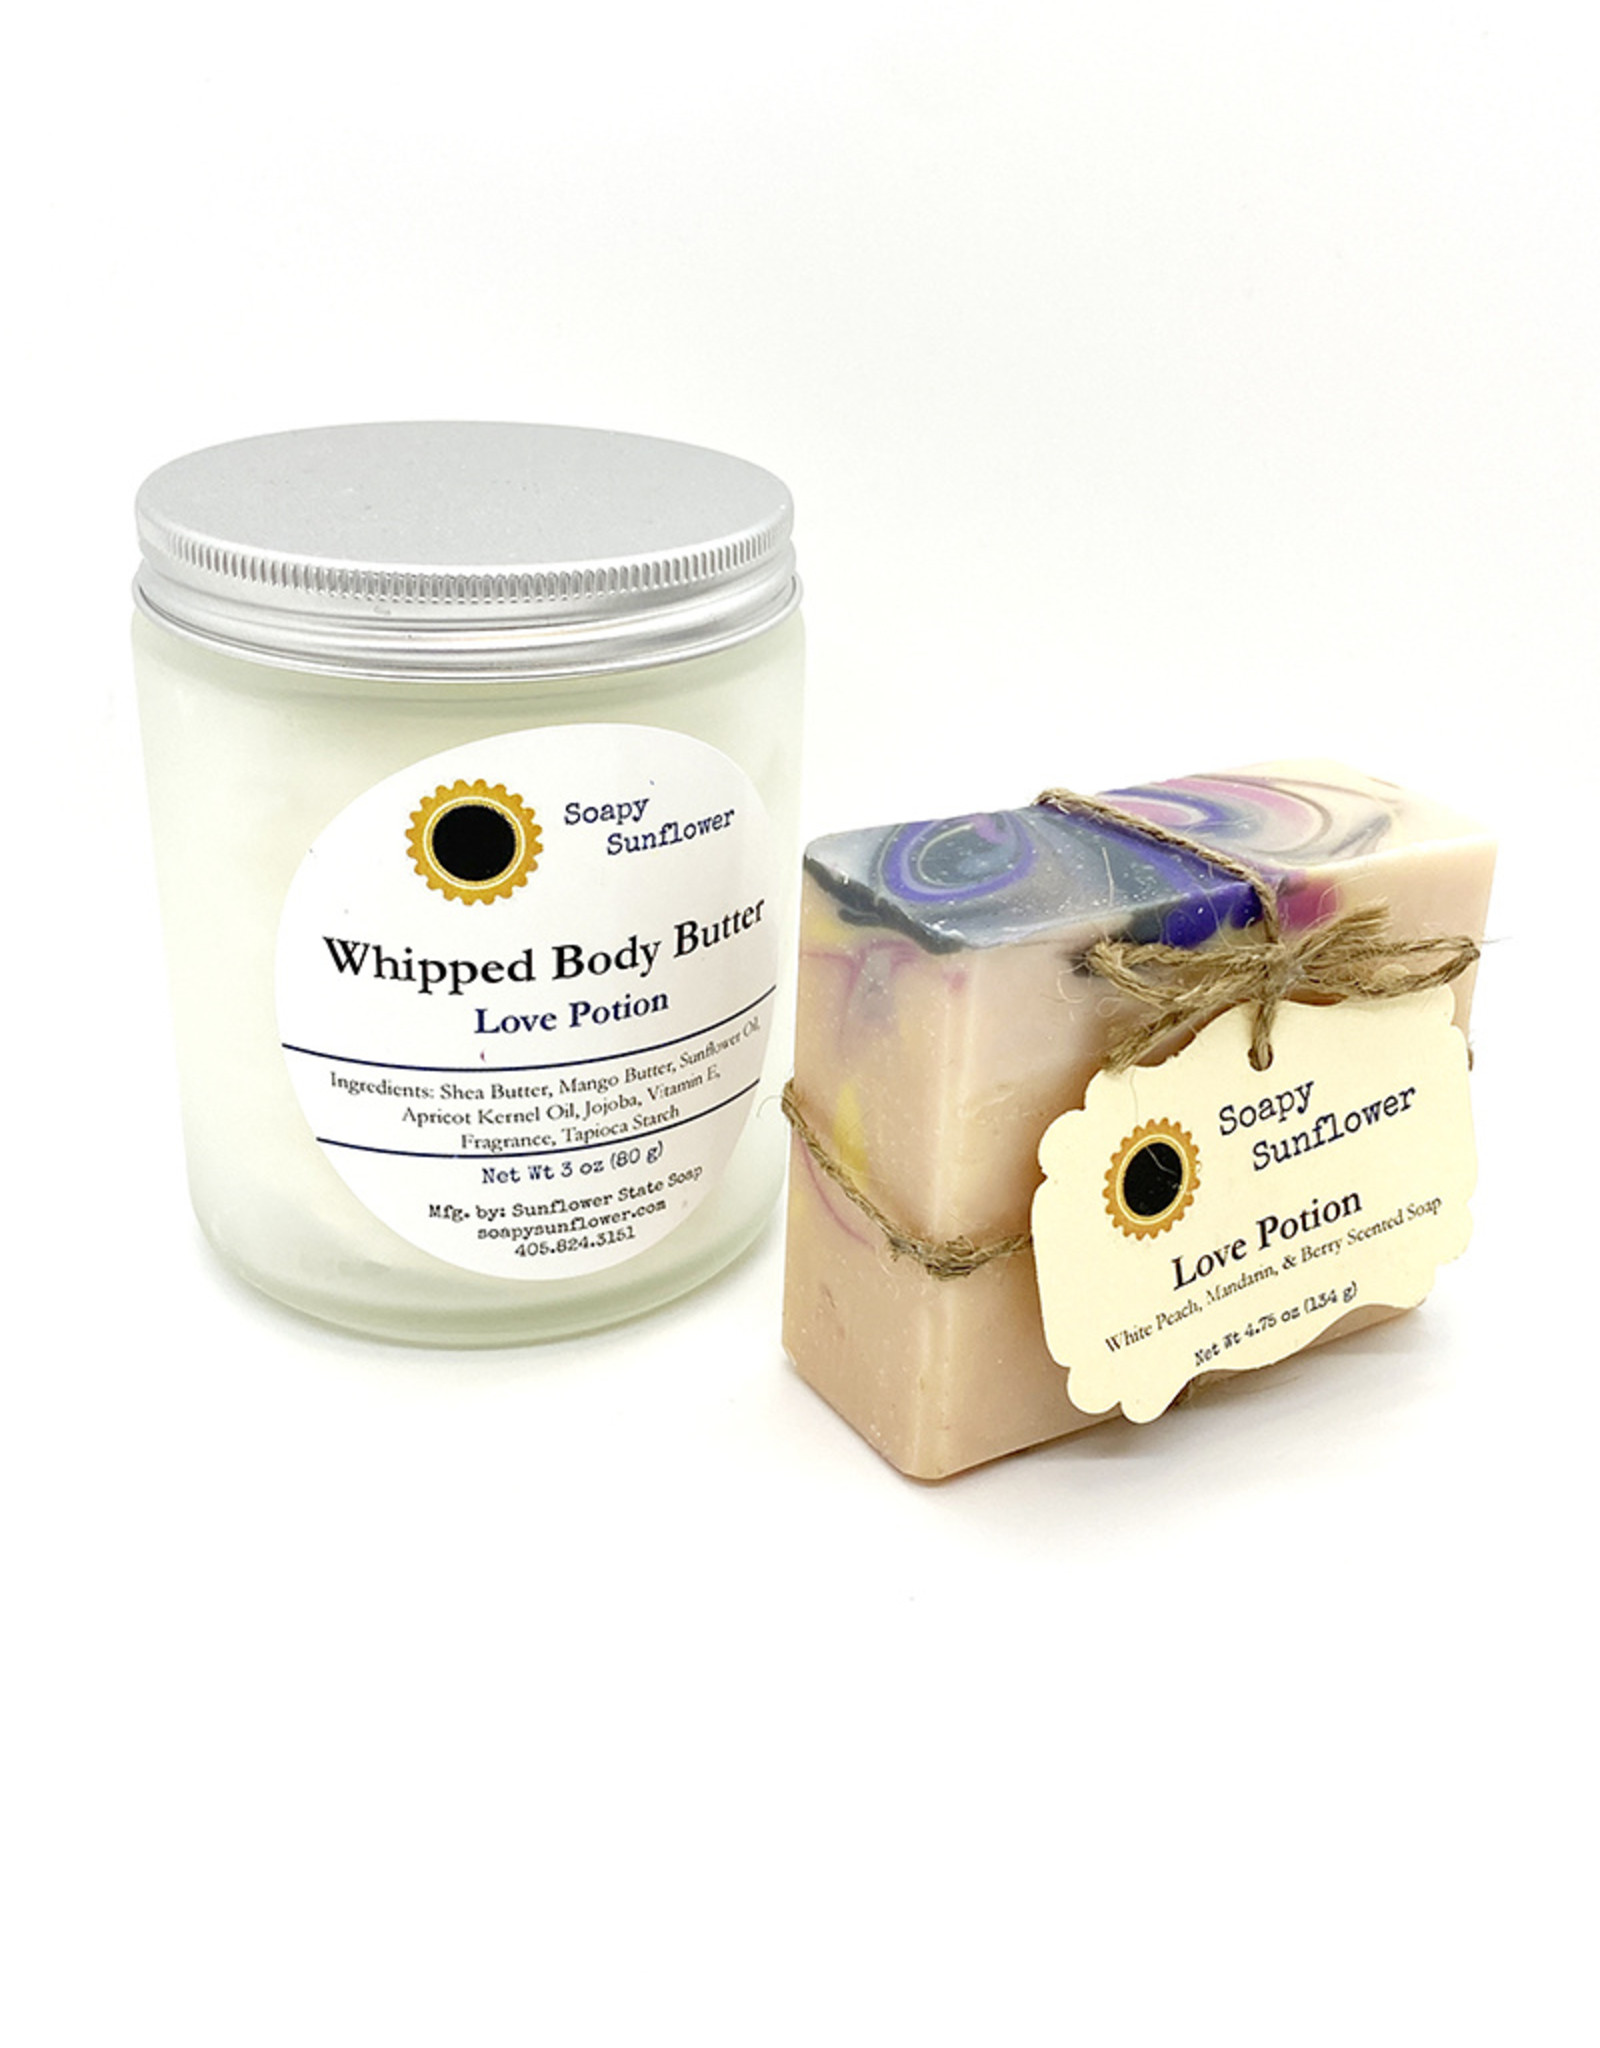 sunflower state soap Love Potion Whipped Body Butter + Handcrafted Soap Gift Set